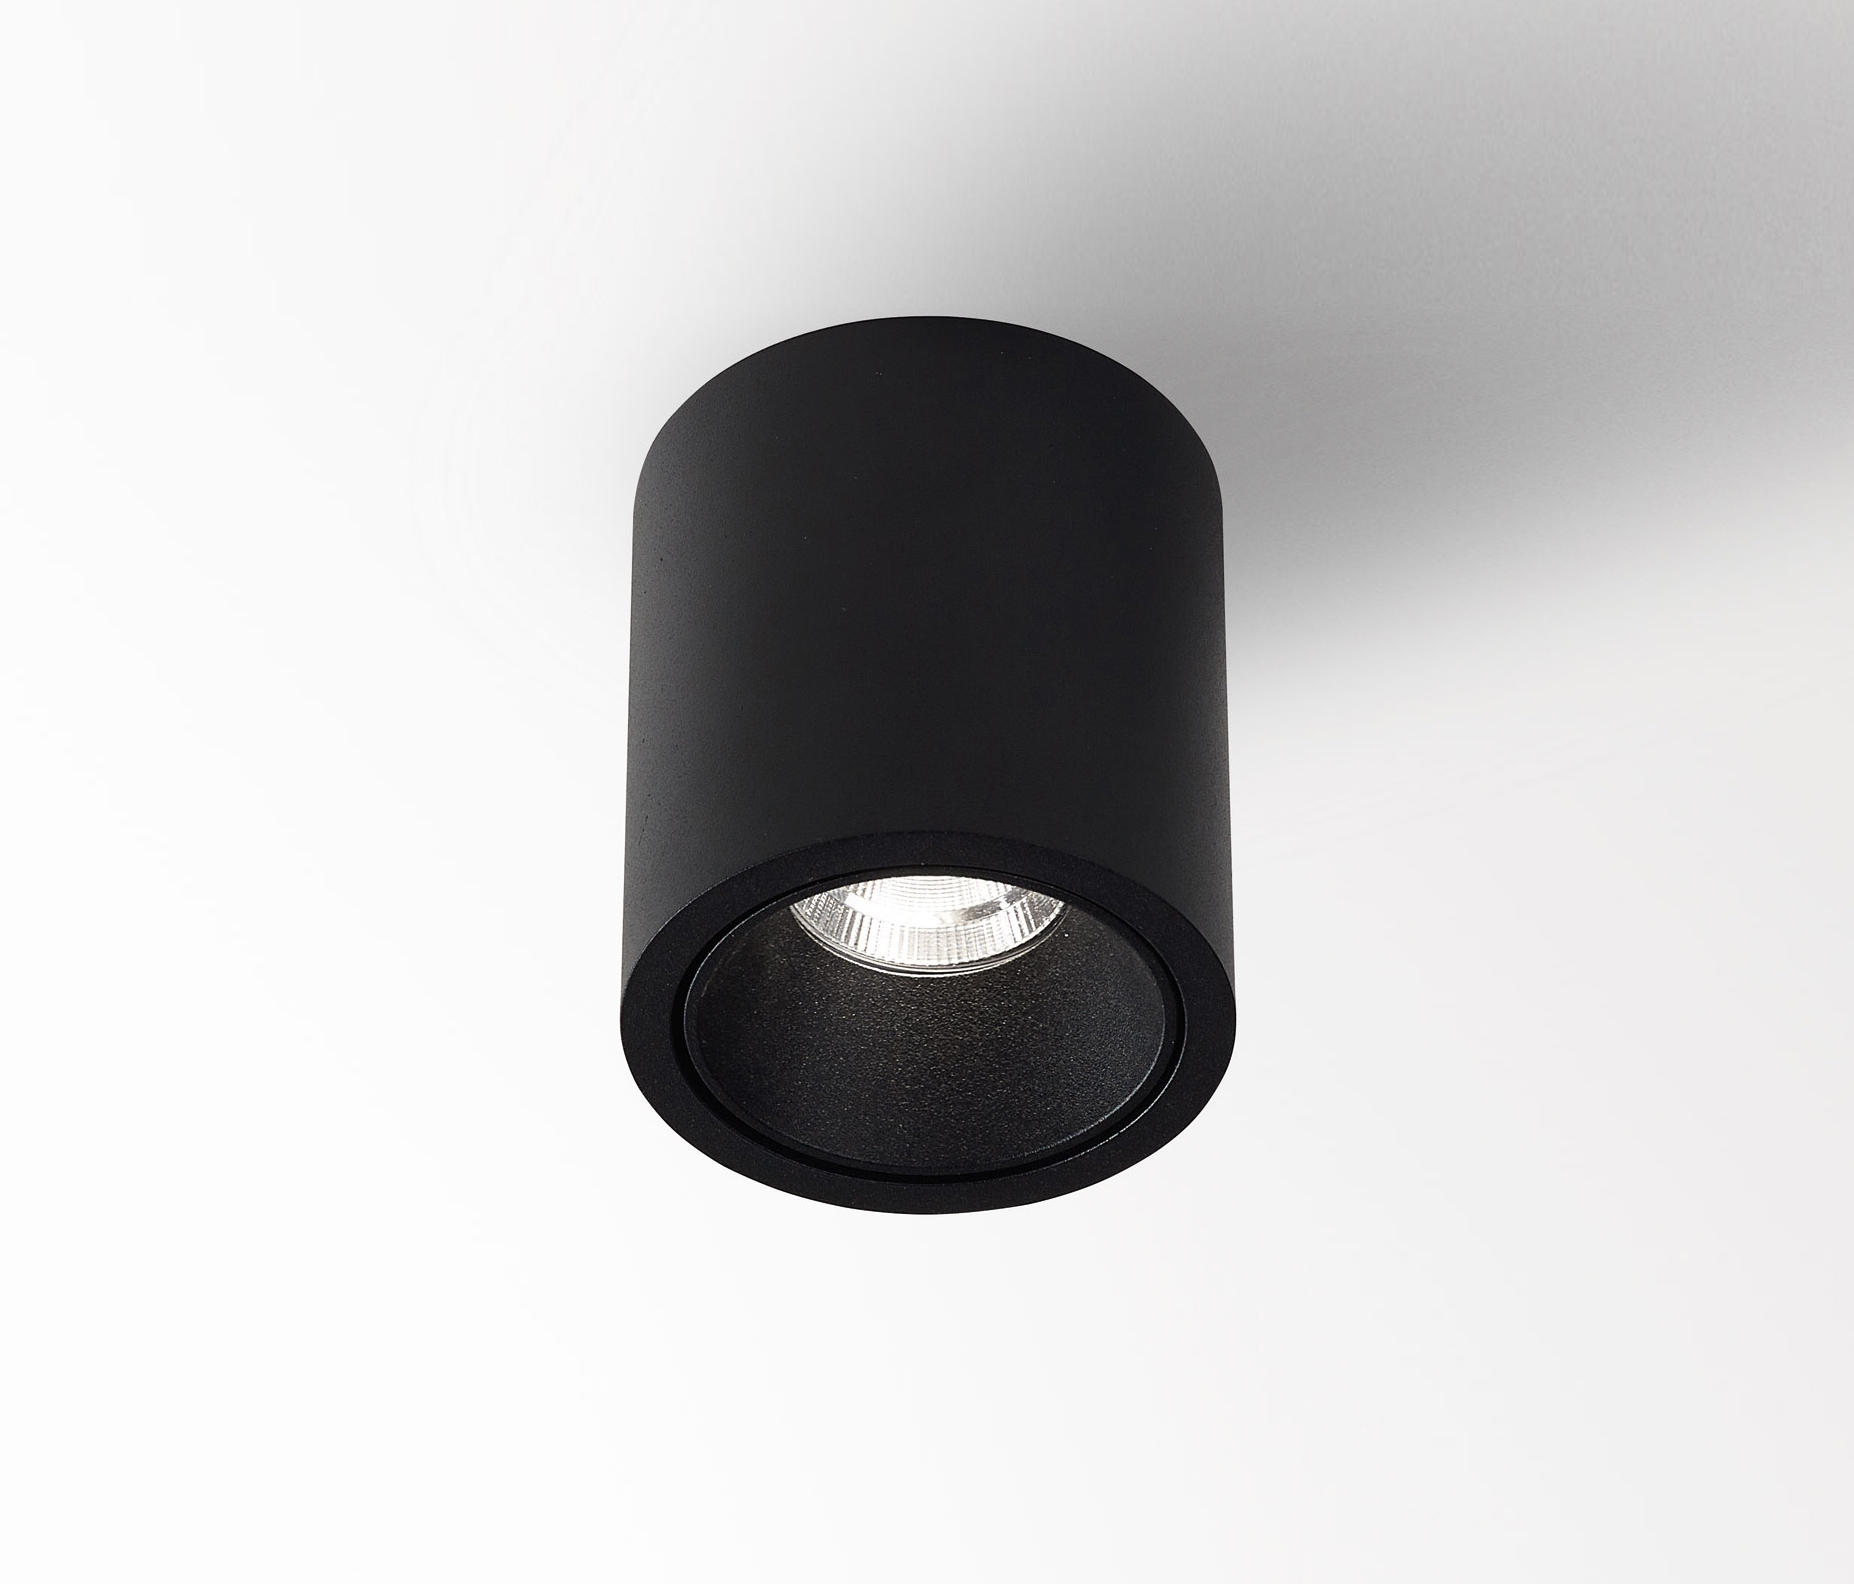 Boxy R Boxy R 93033 Ceiling Lights From Delta Light